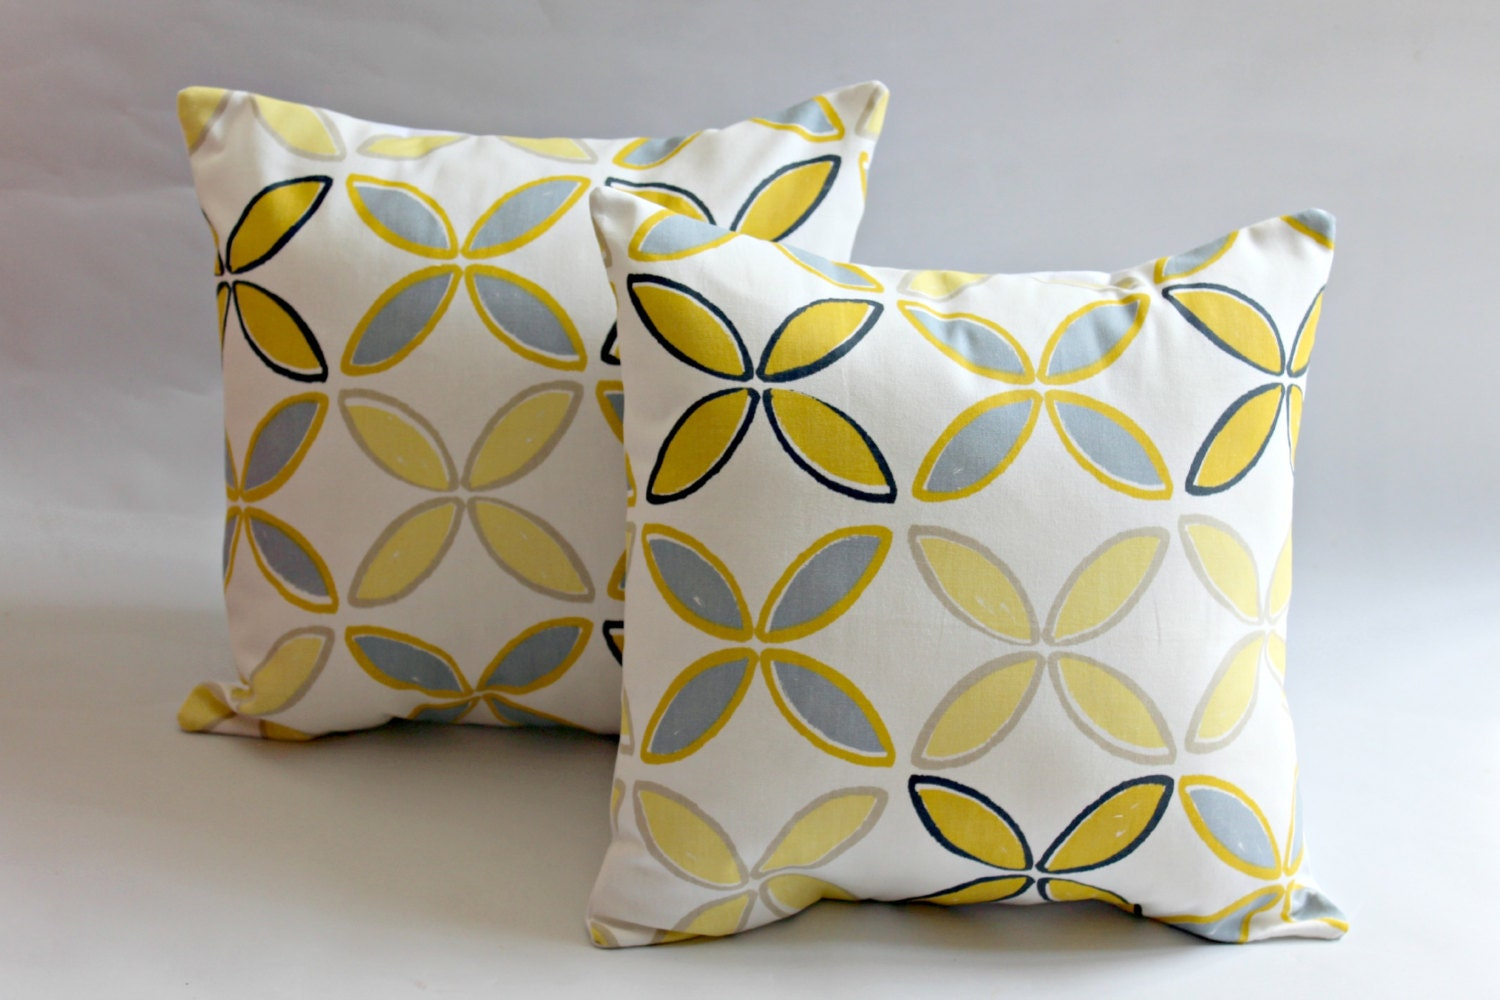 Decorative Pillows yellow mustard silver gray black by VeeDubz